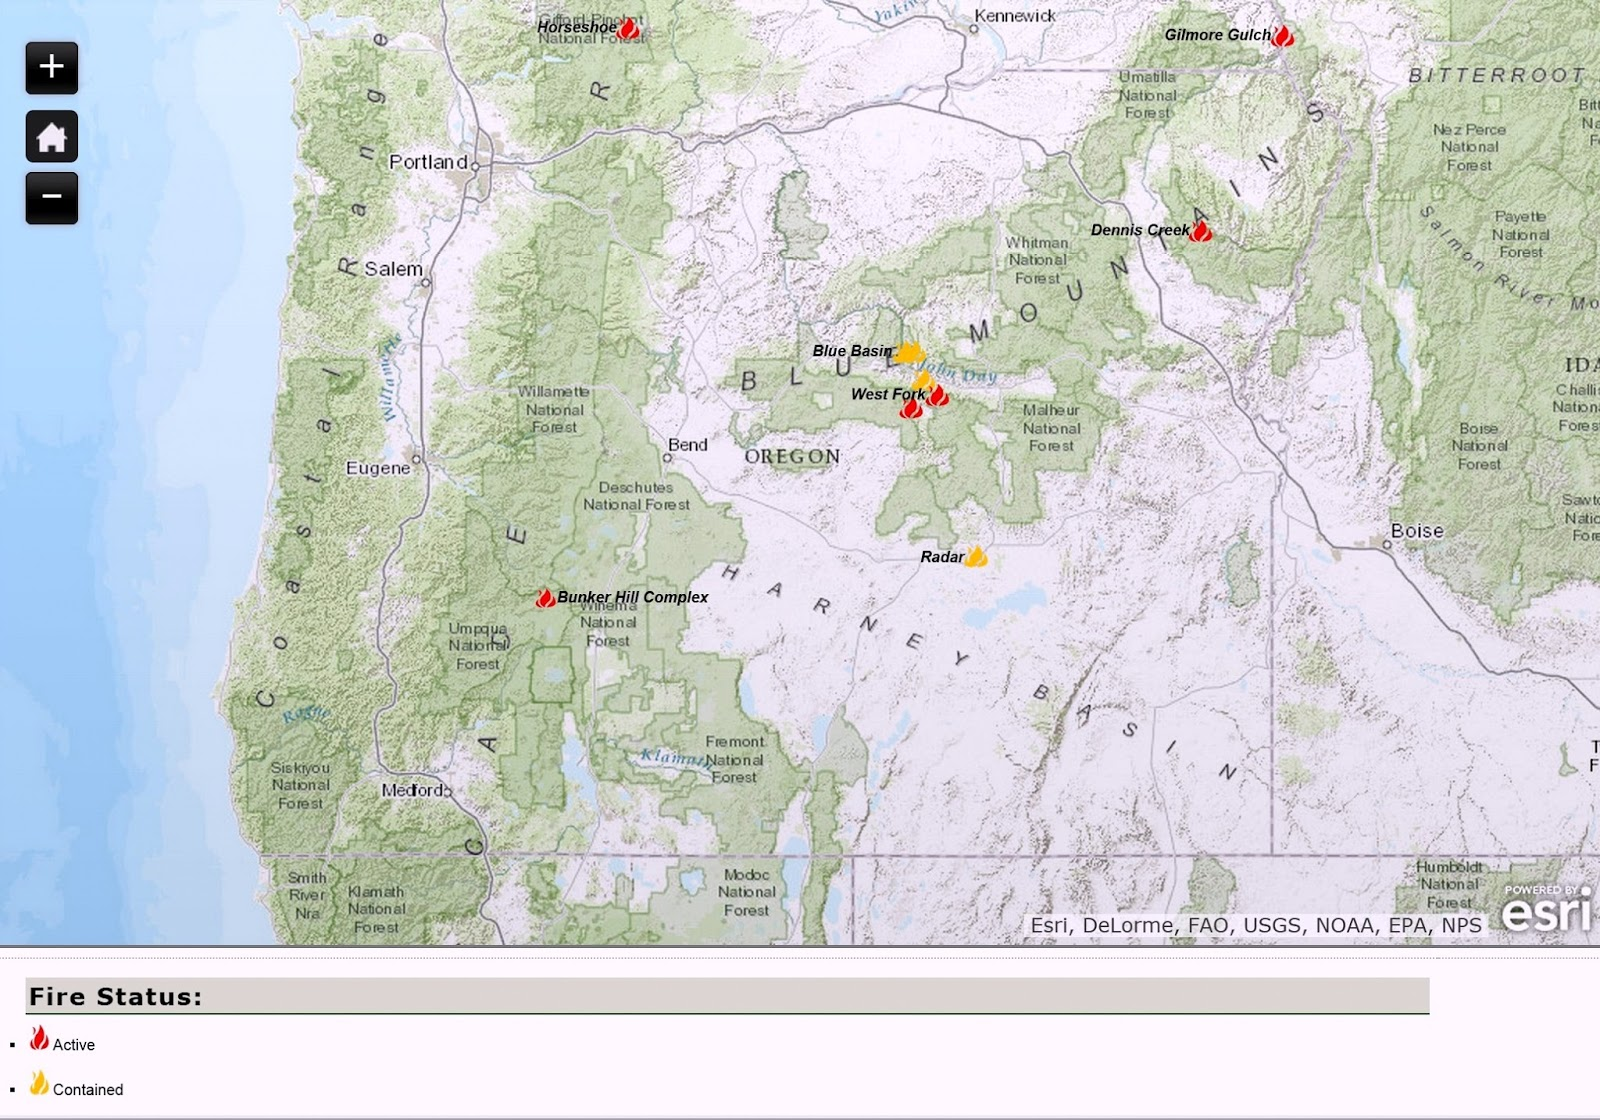 Southern Oregon Wildfire Map.Oregon Smoke Information Current Oregon Wildfire Map For July 8